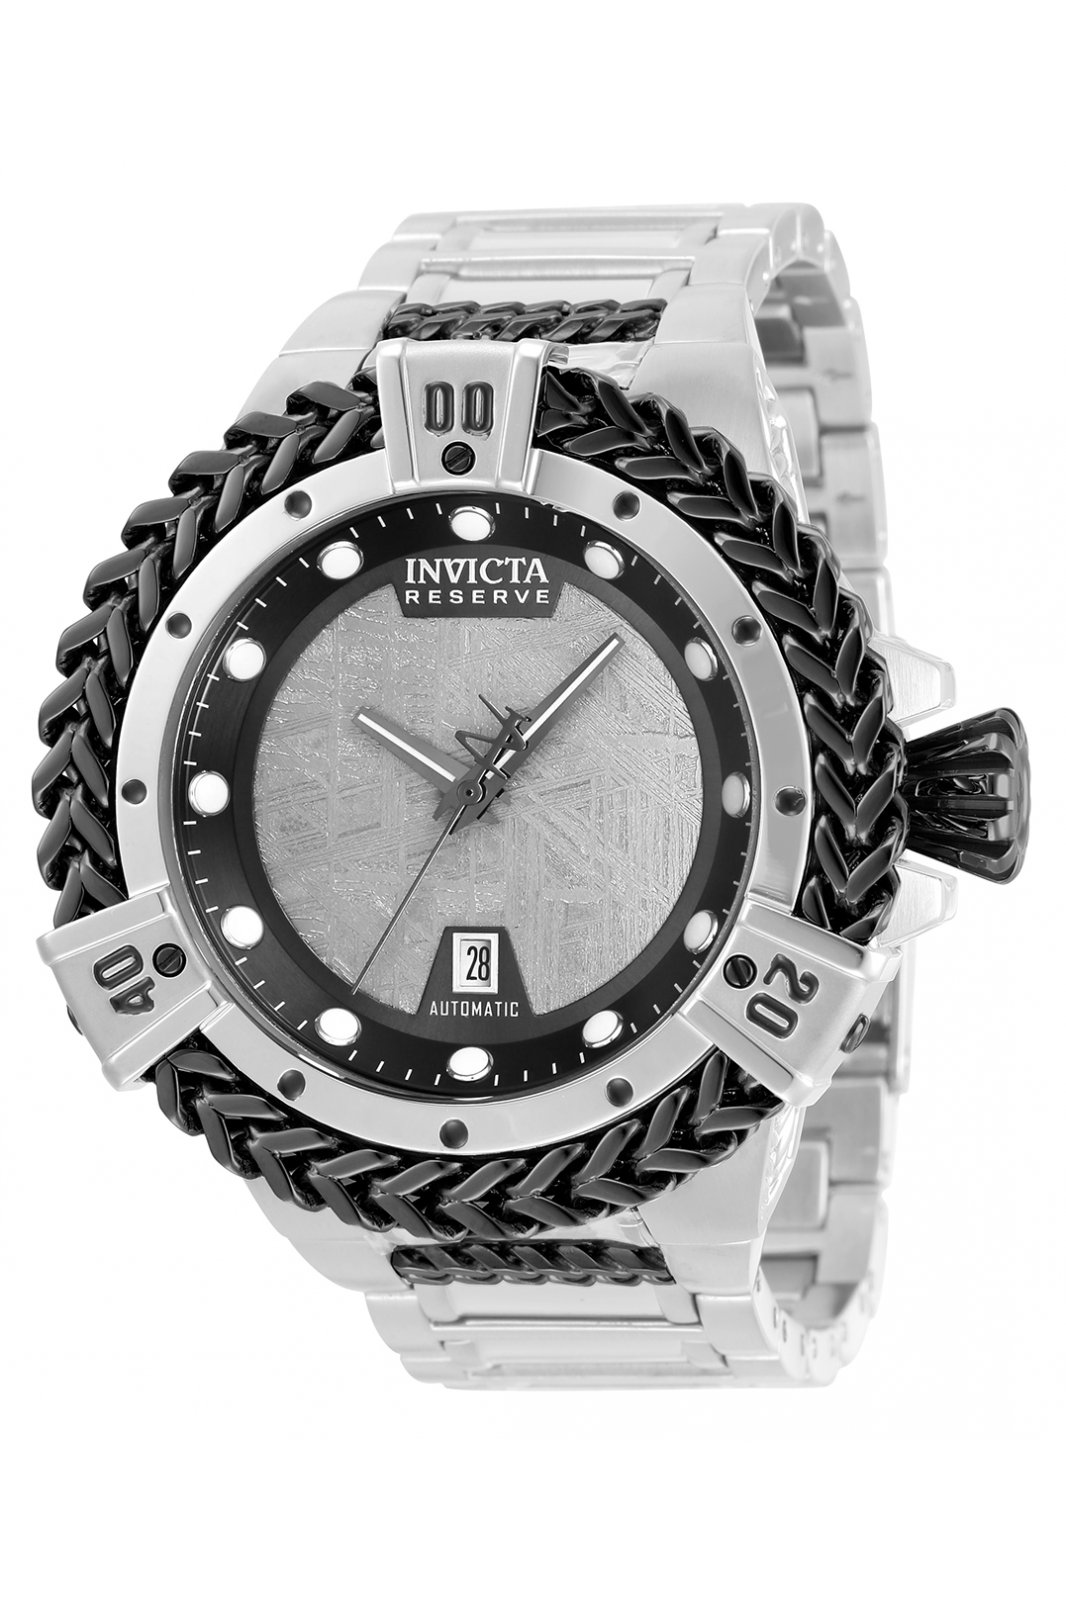 Invicta Reserve - Hercules 34320 Men's automatic Watch - 53mm - Meteorite Dial